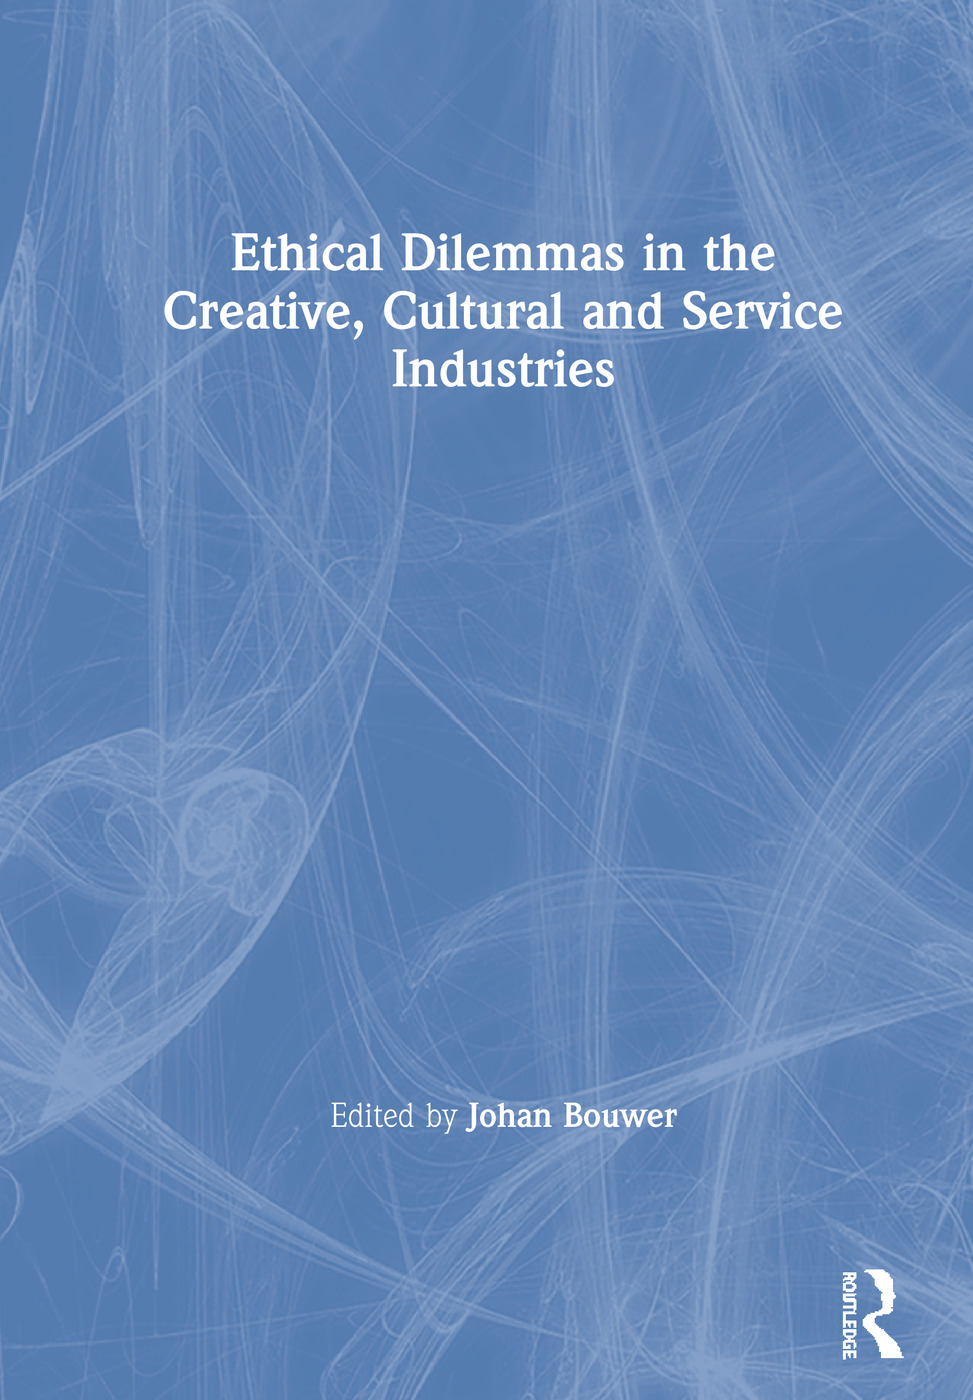 Ethical Dilemmas in the Creative, Cultural and Service Industries book cover